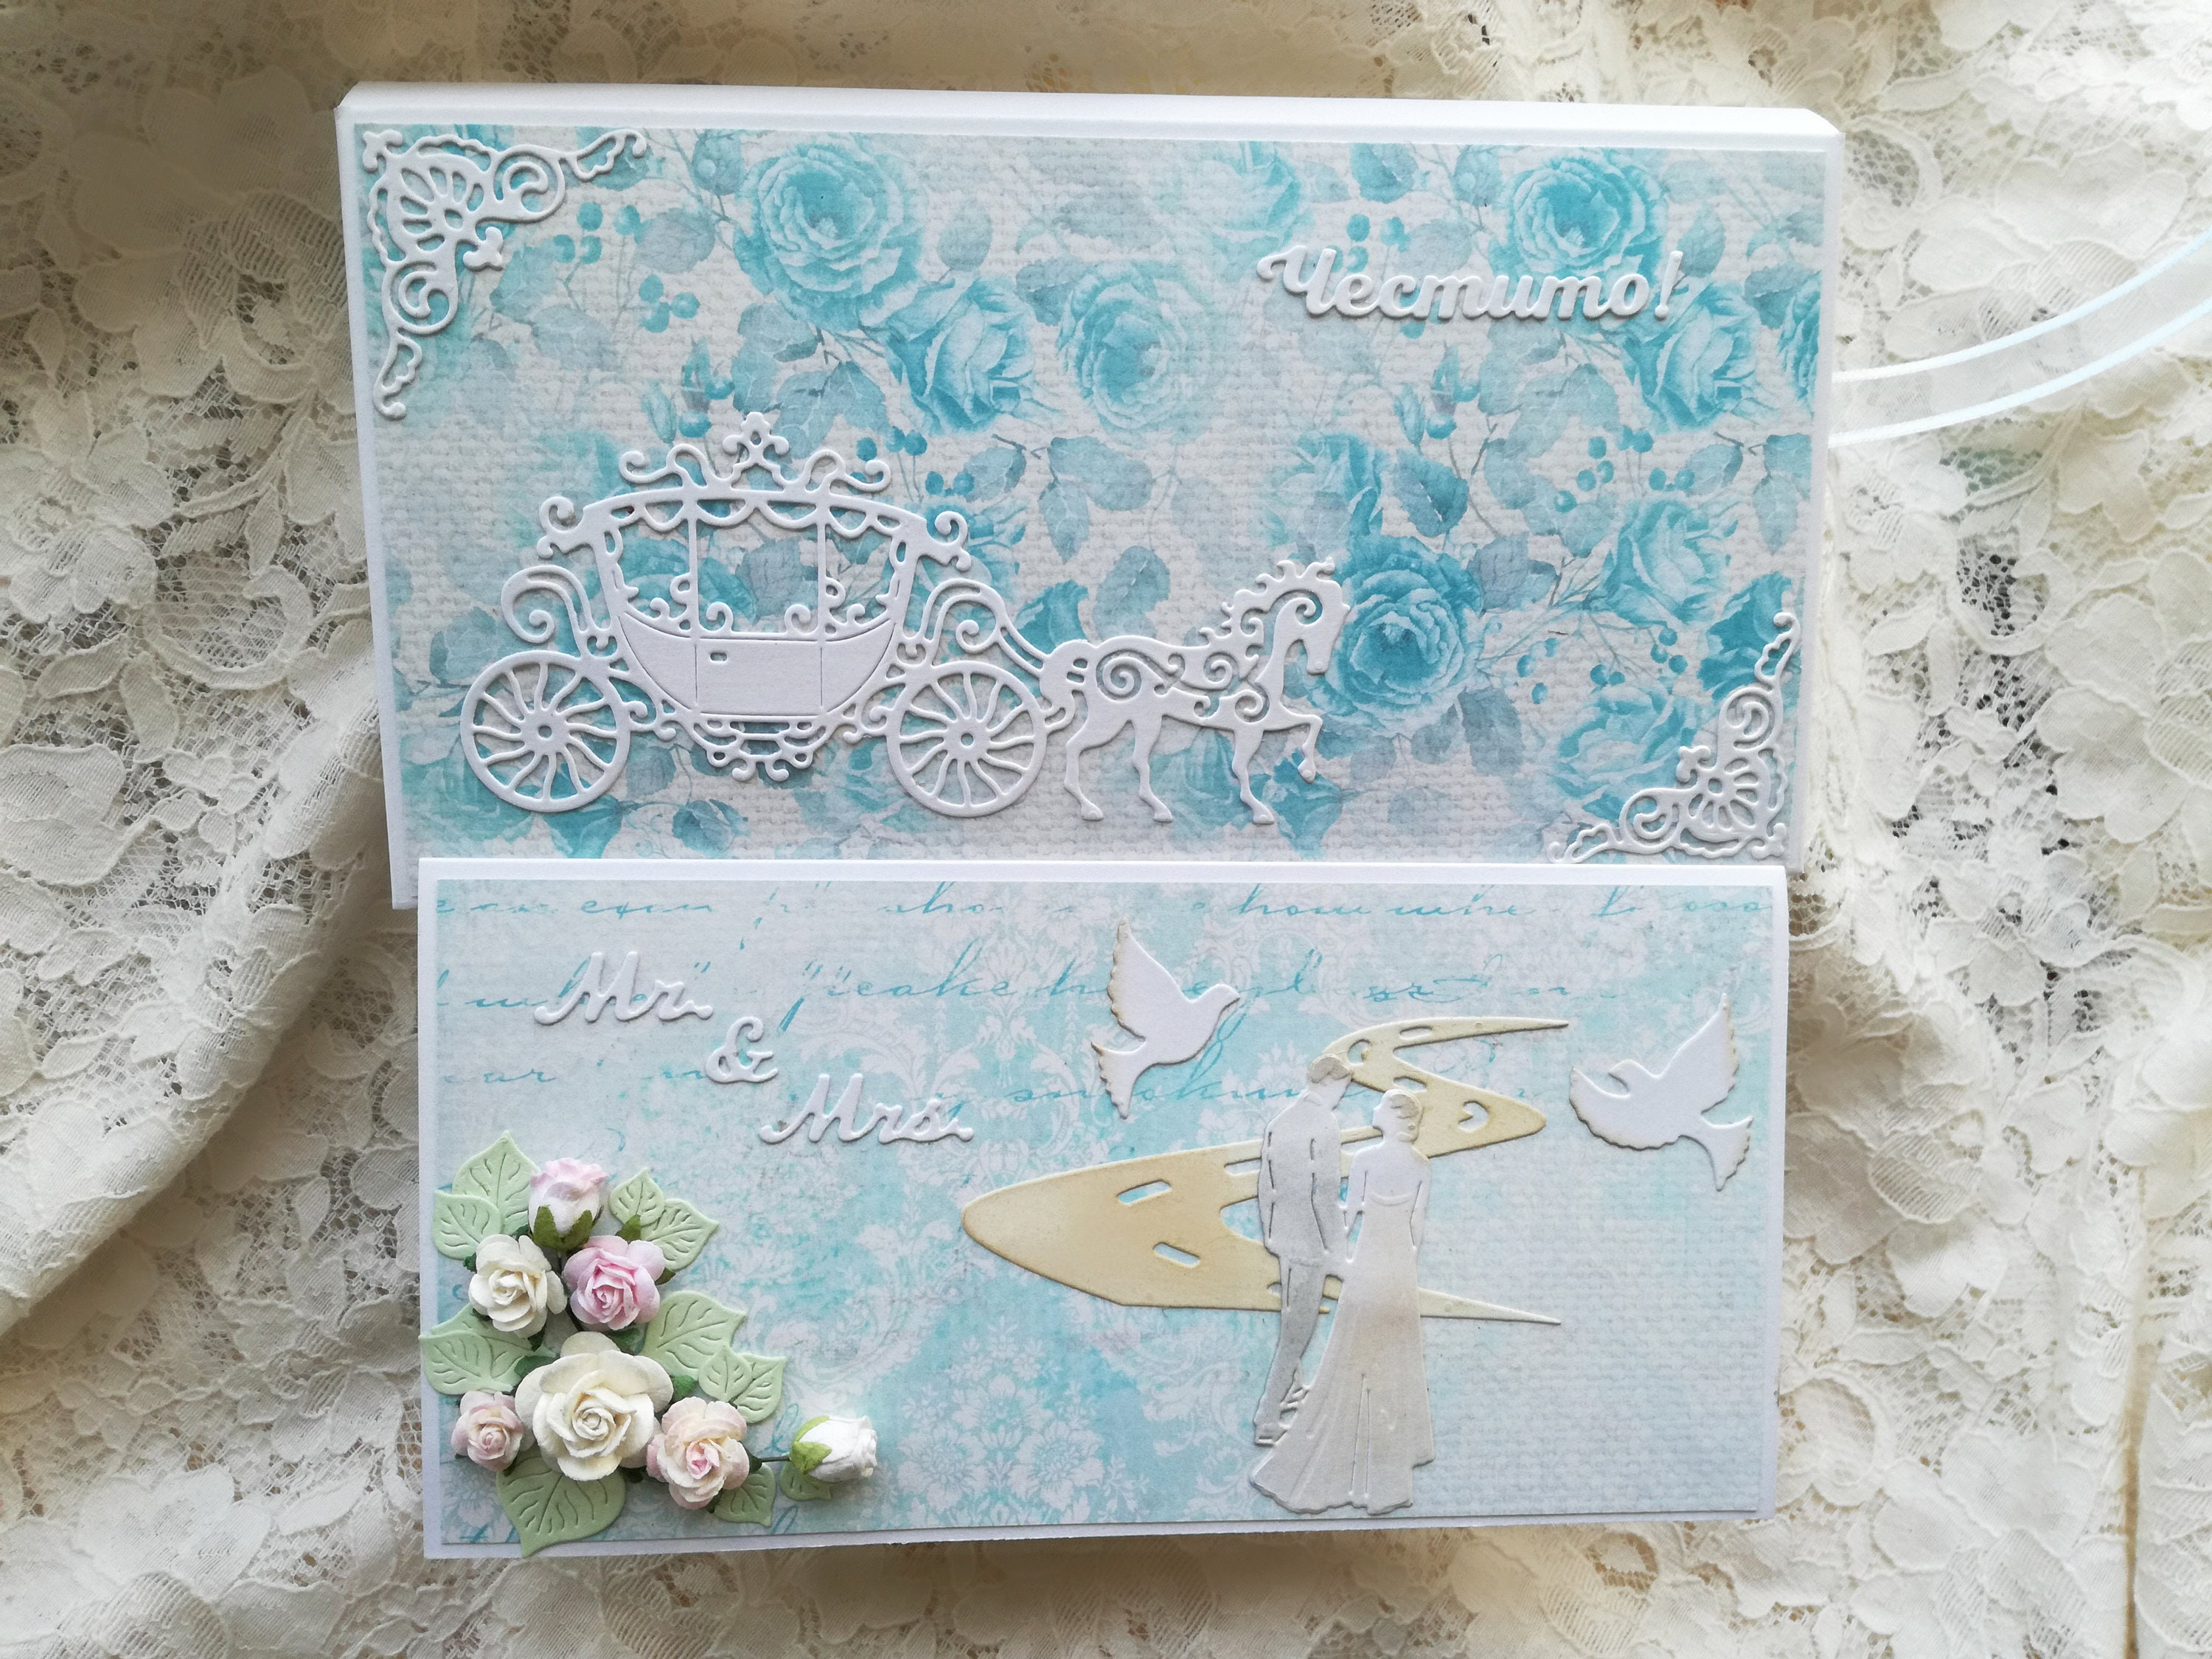 Wedding Day Card Bride and Groom Card Wedding Wishes Handmade  Congratulations Card Personalized Wedding Newly Married Couple Greeting Card